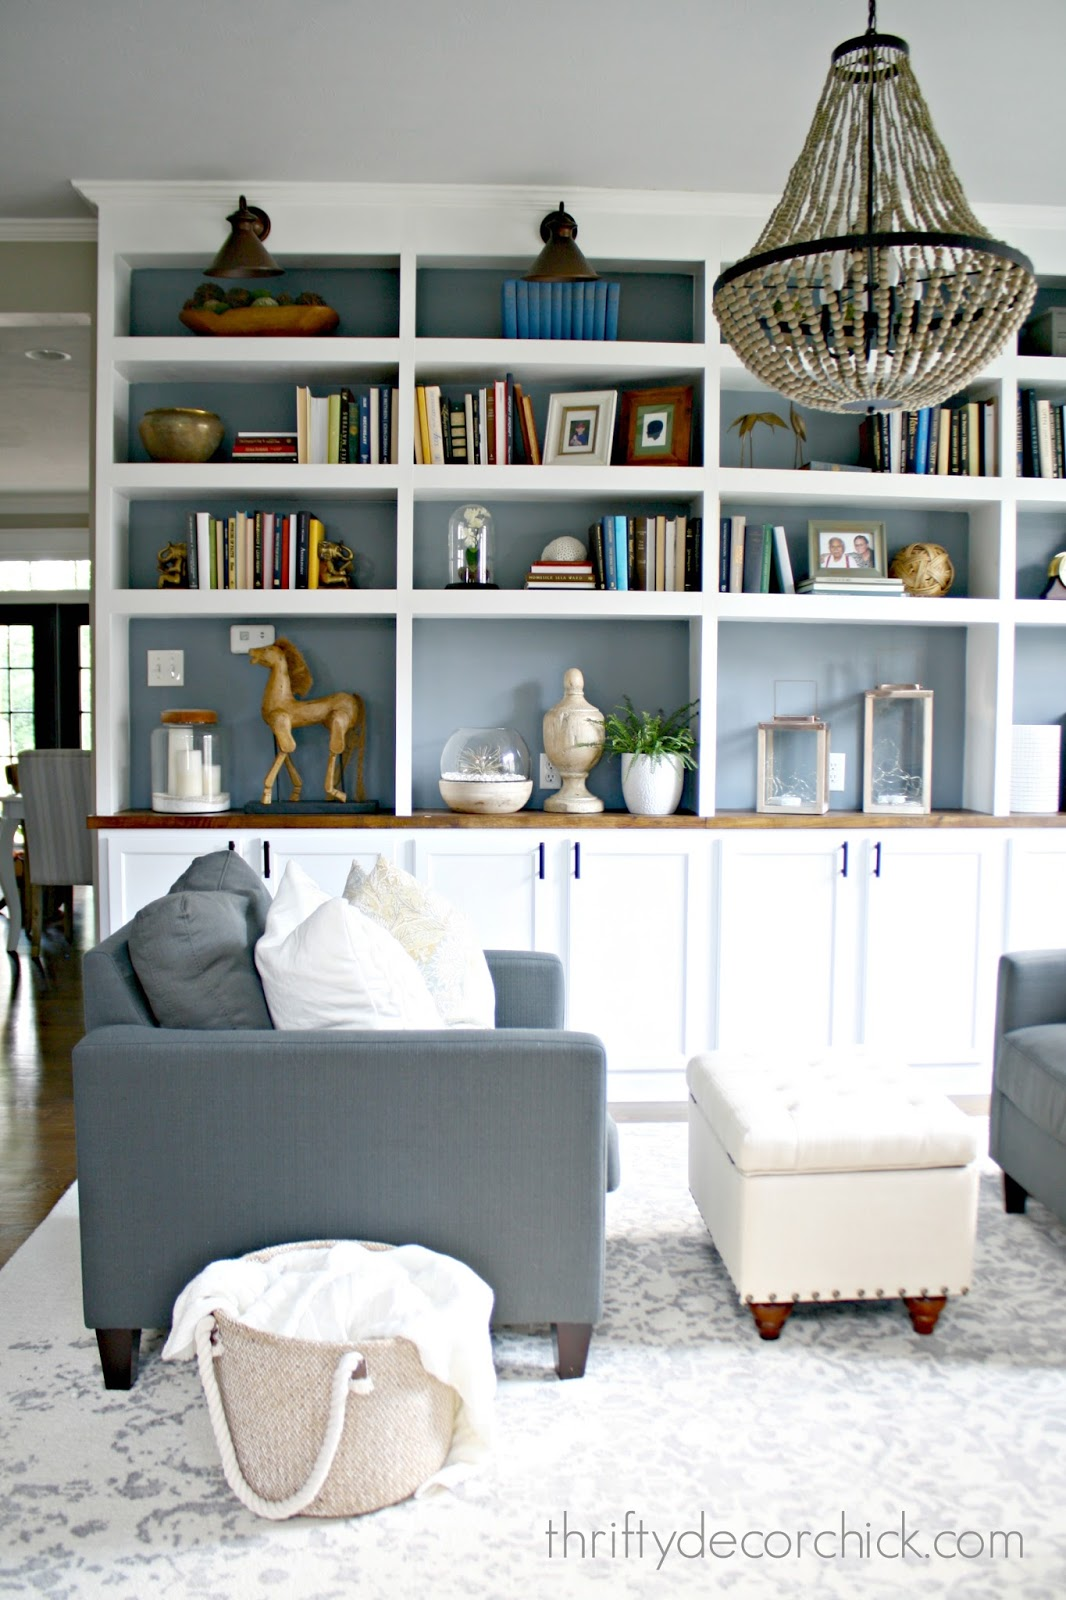 how to decorate bookcases - How To Decorate Bookshelves